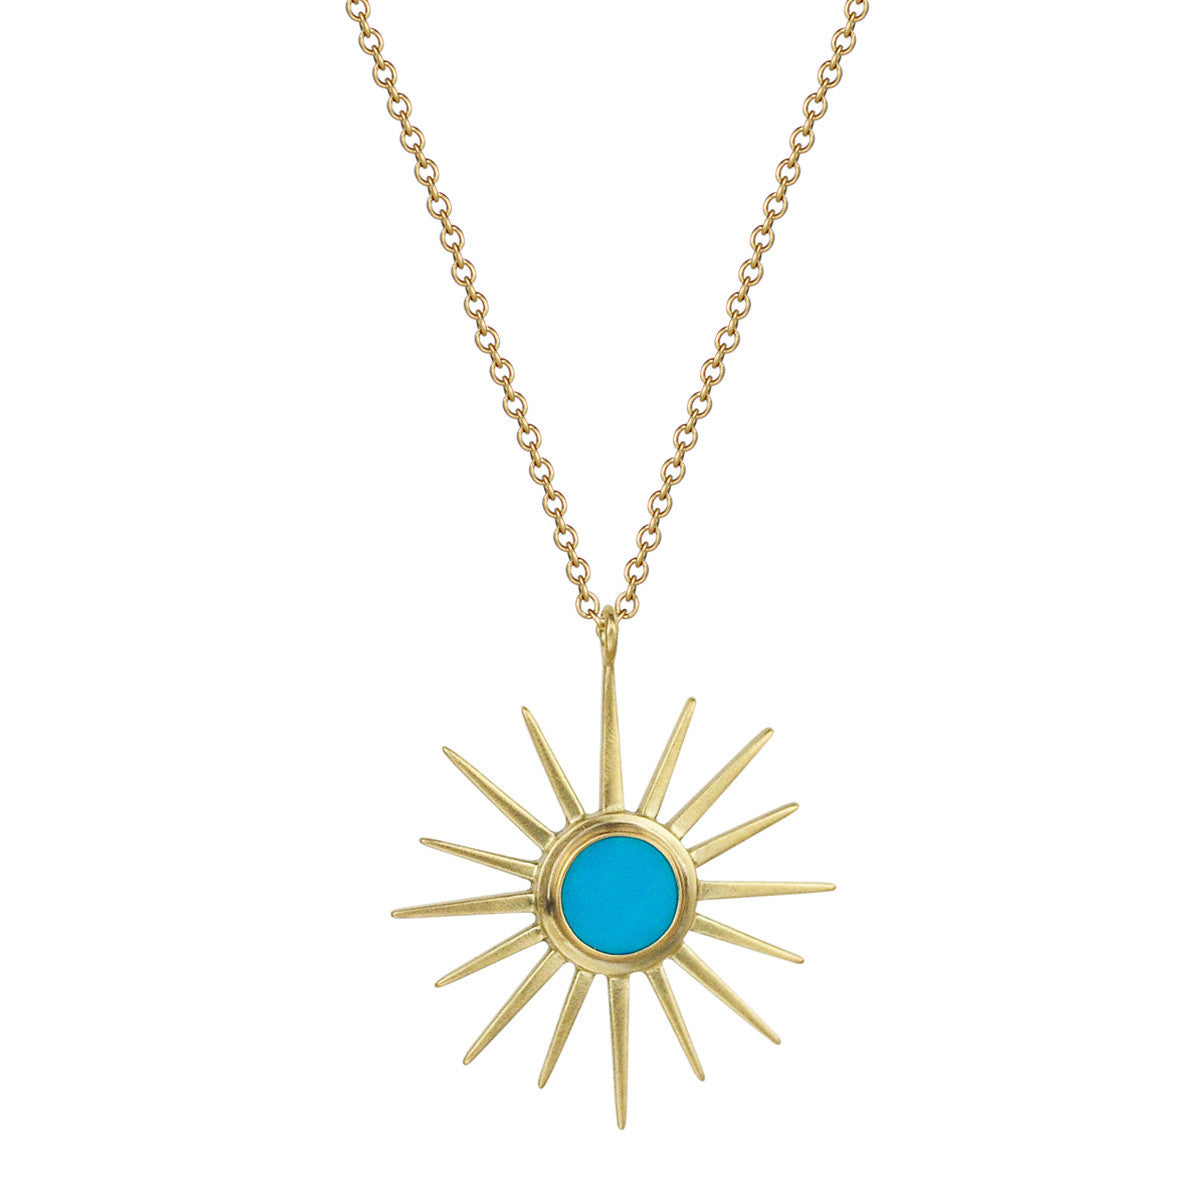 18K Gold Sun Pendant with Turquoise Center